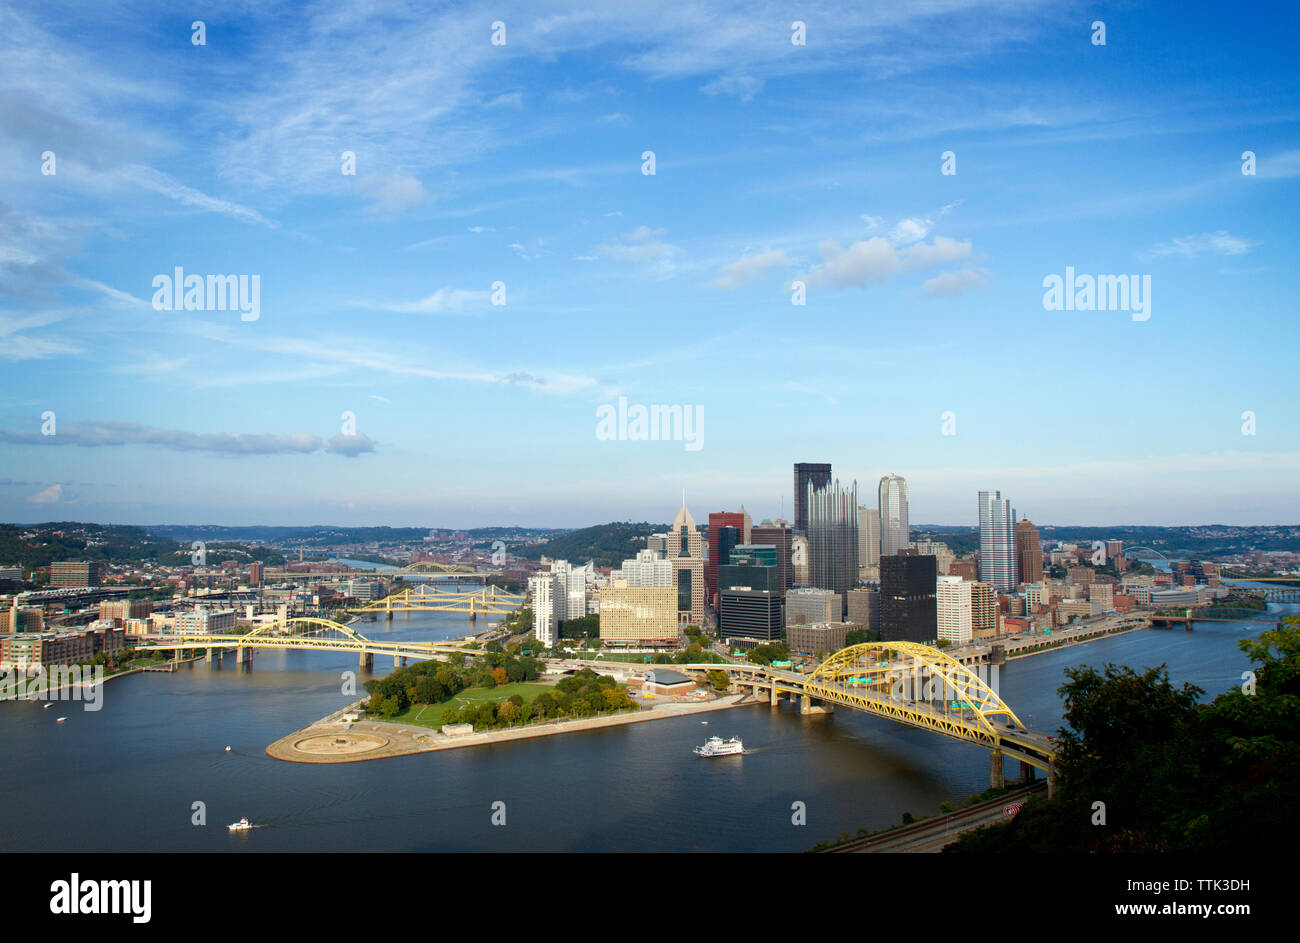 High angle view of bridges over river in Pittsburgh city against blue sky - Stock Image